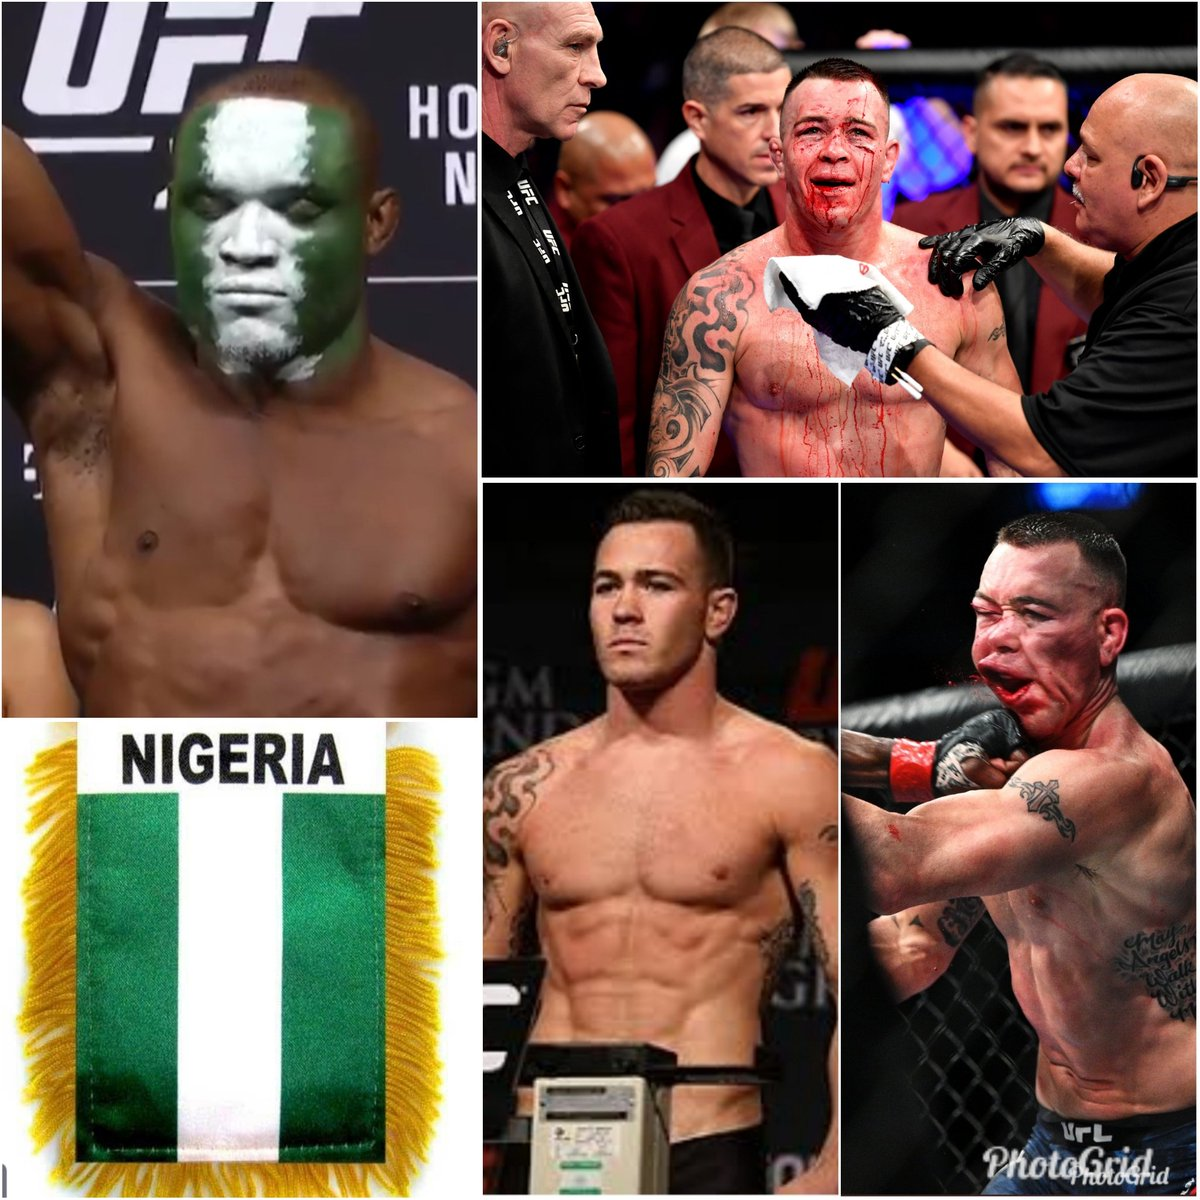 #ColbyCovington before & after #KarmuUsman got his paws 🐾 on his #PunkAss! The #NigerianNightmare will haunt @ColbyCovMMA forever. @USMAN84kg youre a humble man & fighter but you earned your right to #TalkYoShit! Fuck #ColbyandTheTrumpTrain @realDonaldTrump #UFC245 #Trump🇳🇬